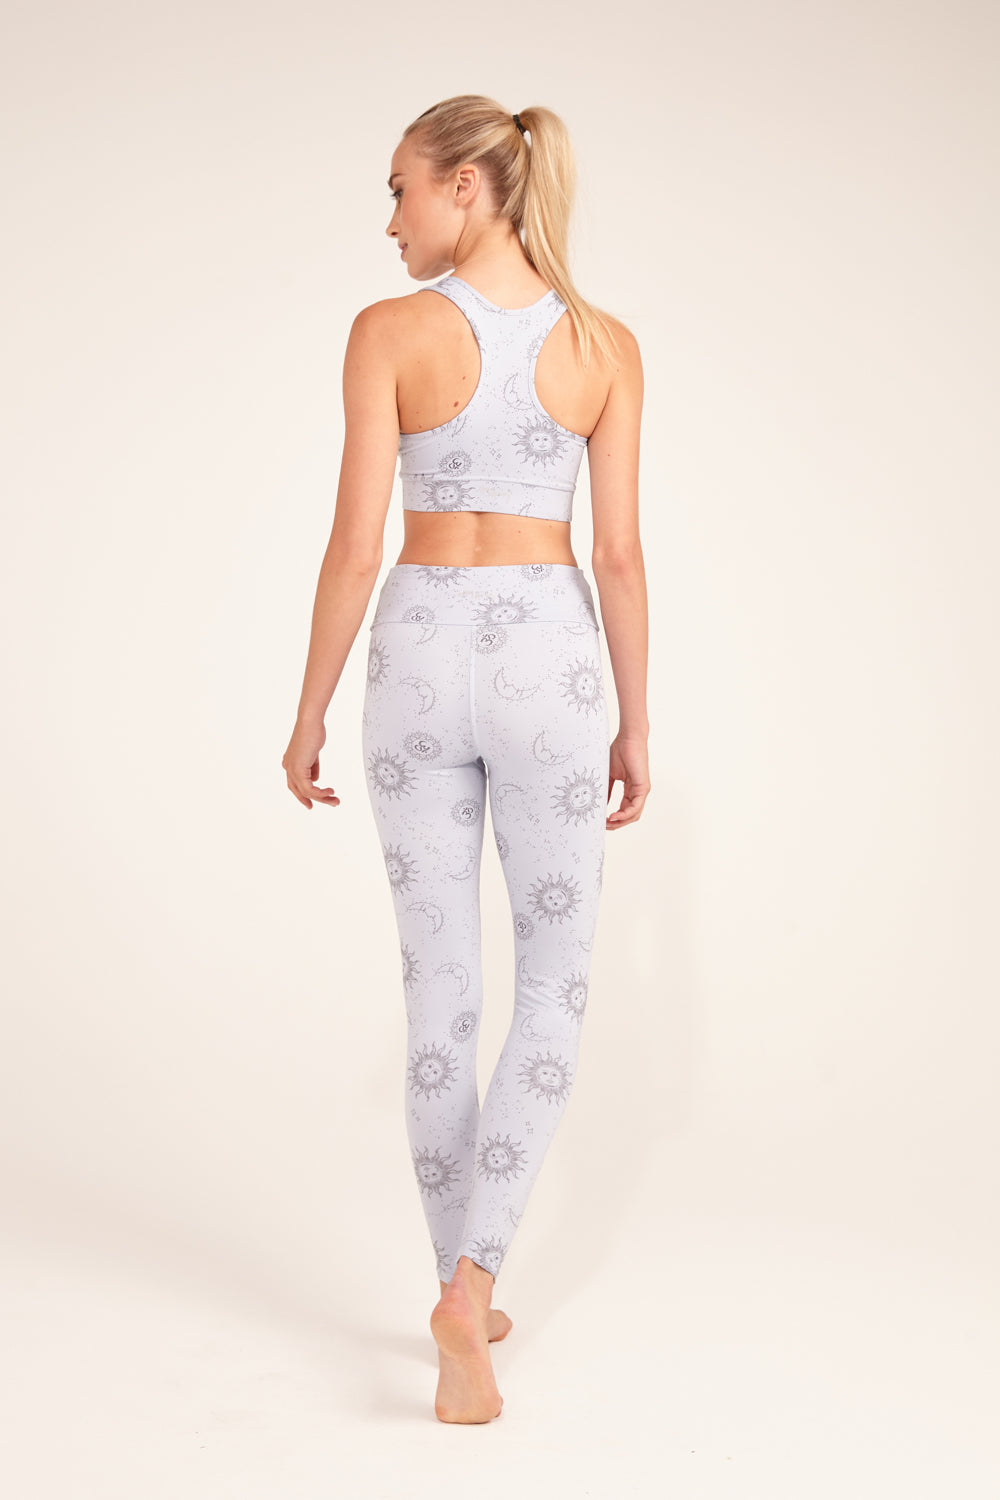 Hey Honey Leggings Sun Moon Om